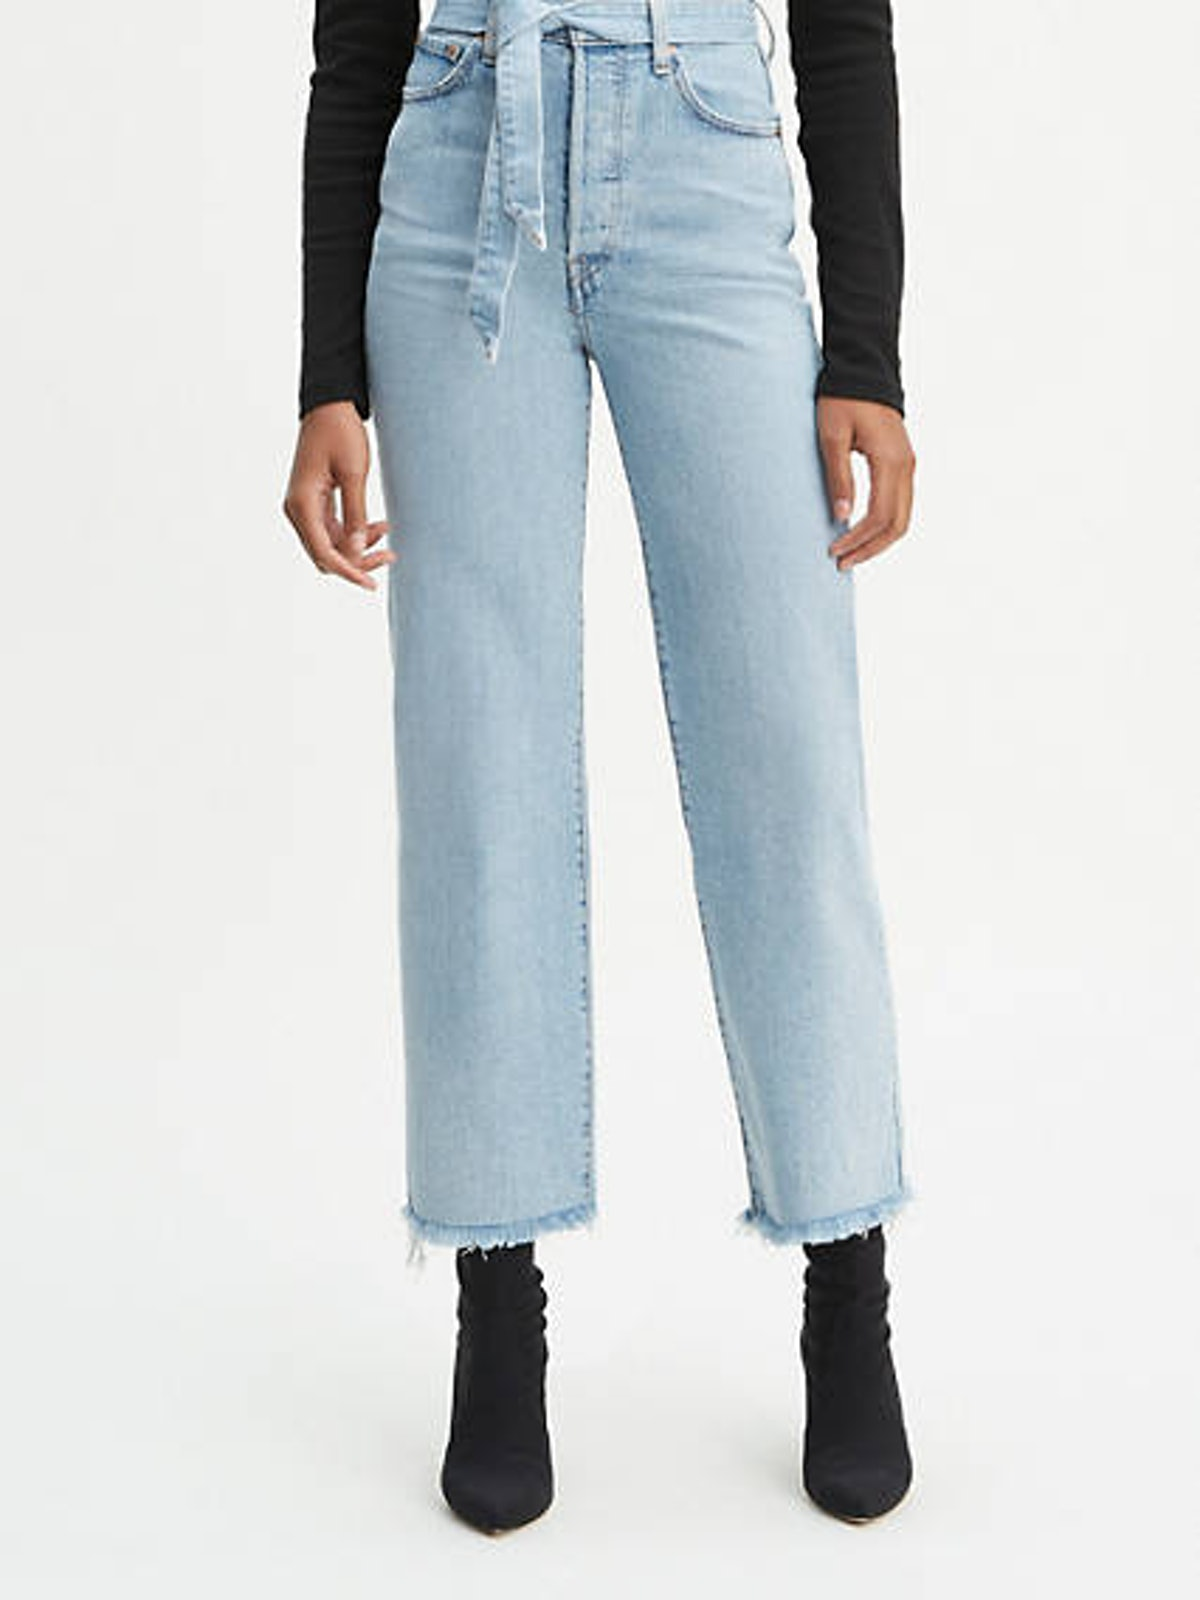 Ribcage Straight Jeans in Get It Done